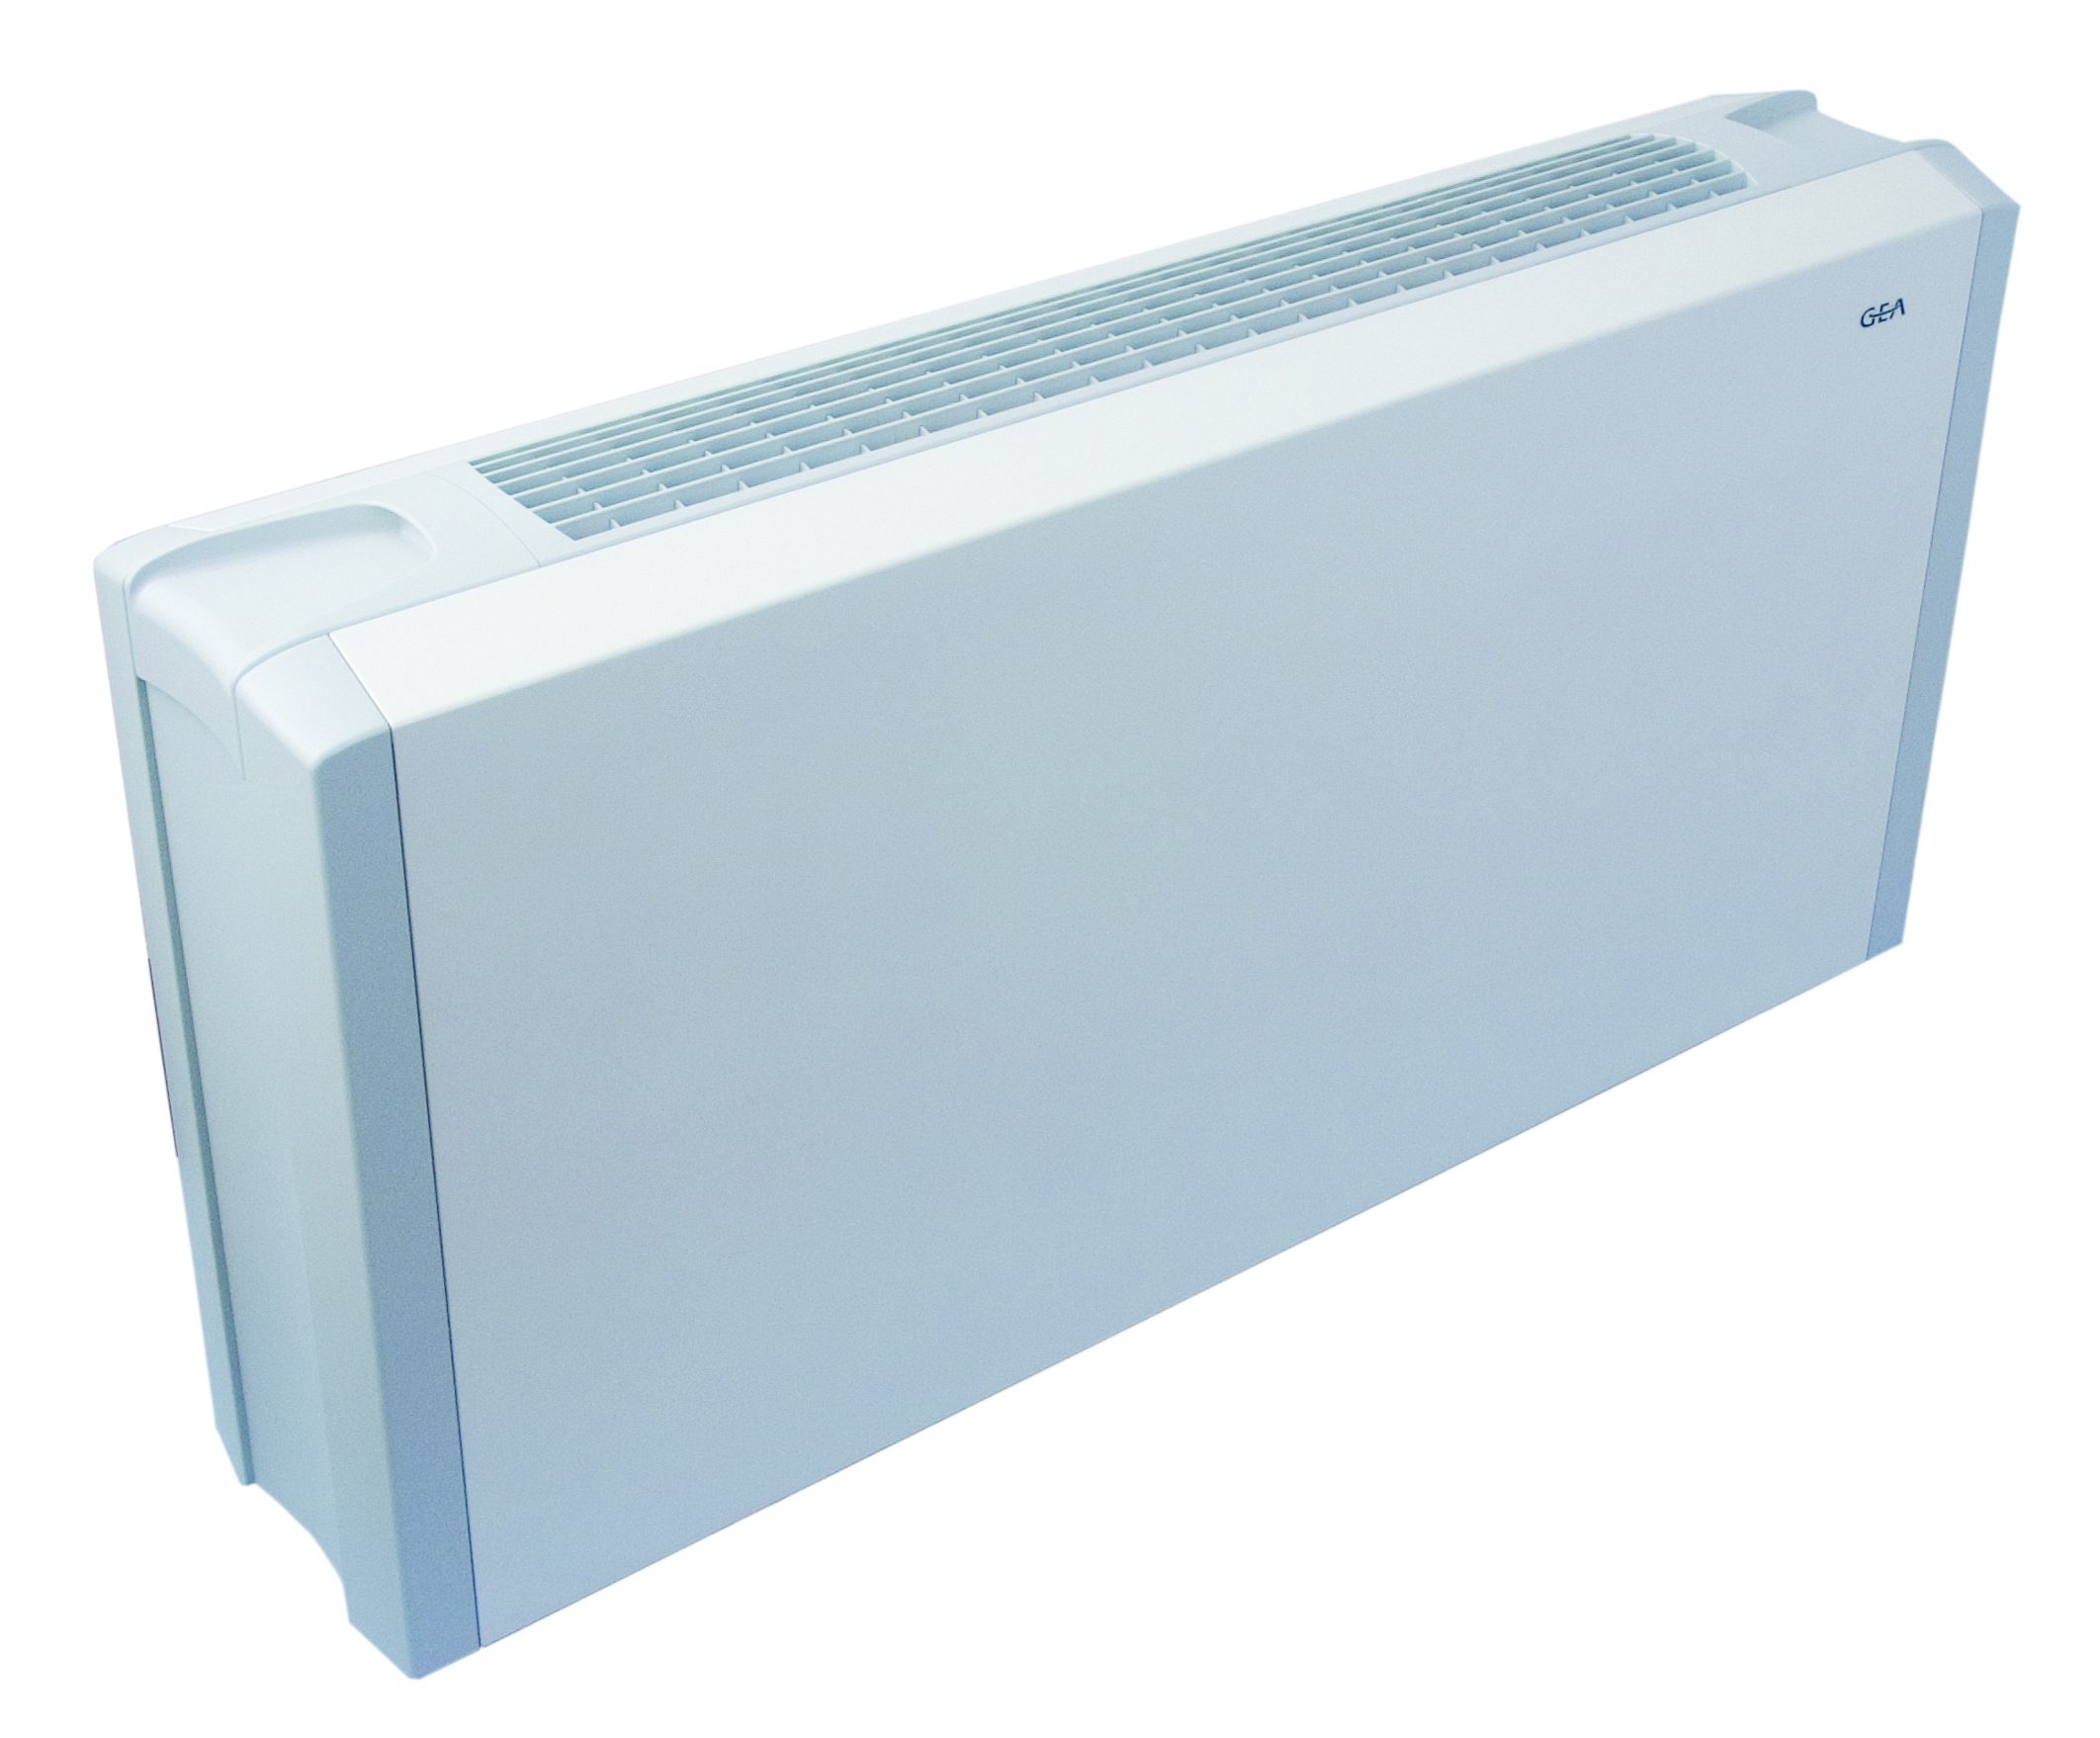 The first fan coil unit with a seal of approval for hygiene is from GEA